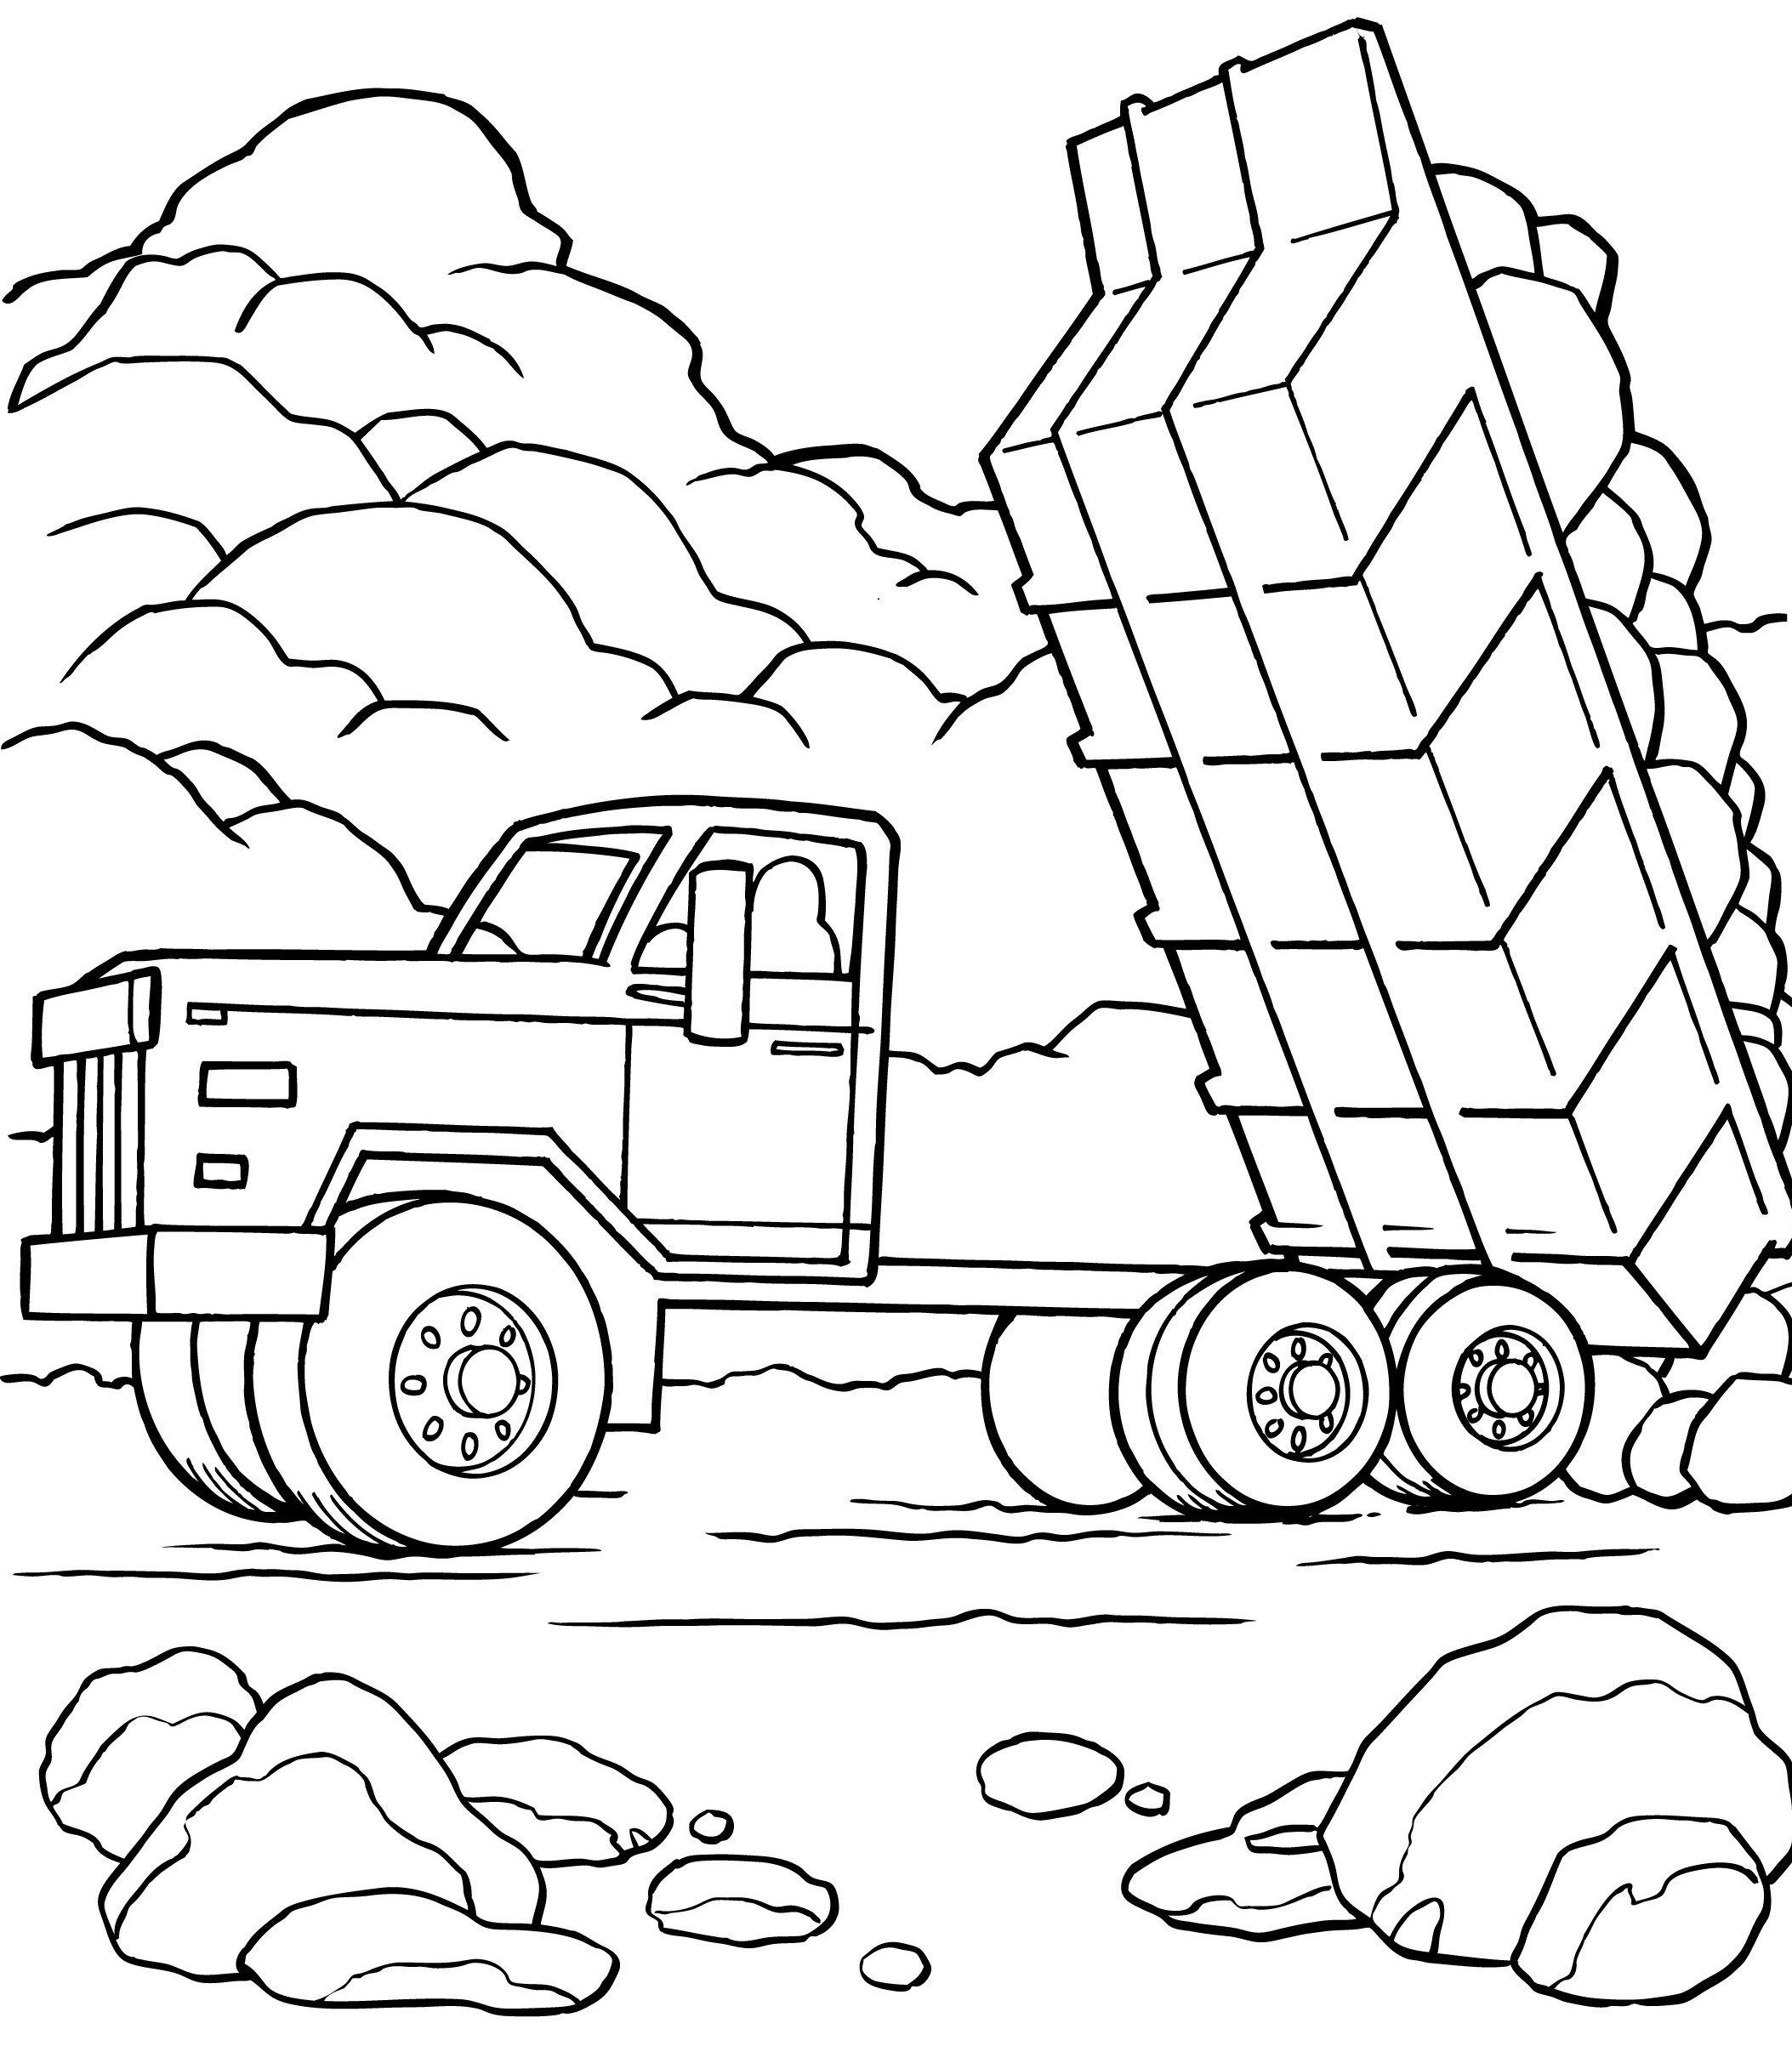 Wonderful Image Of Trucks Coloring Pages Davemelillo Com Monster Truck Coloring Pages Truck Coloring Pages Train Coloring Pages